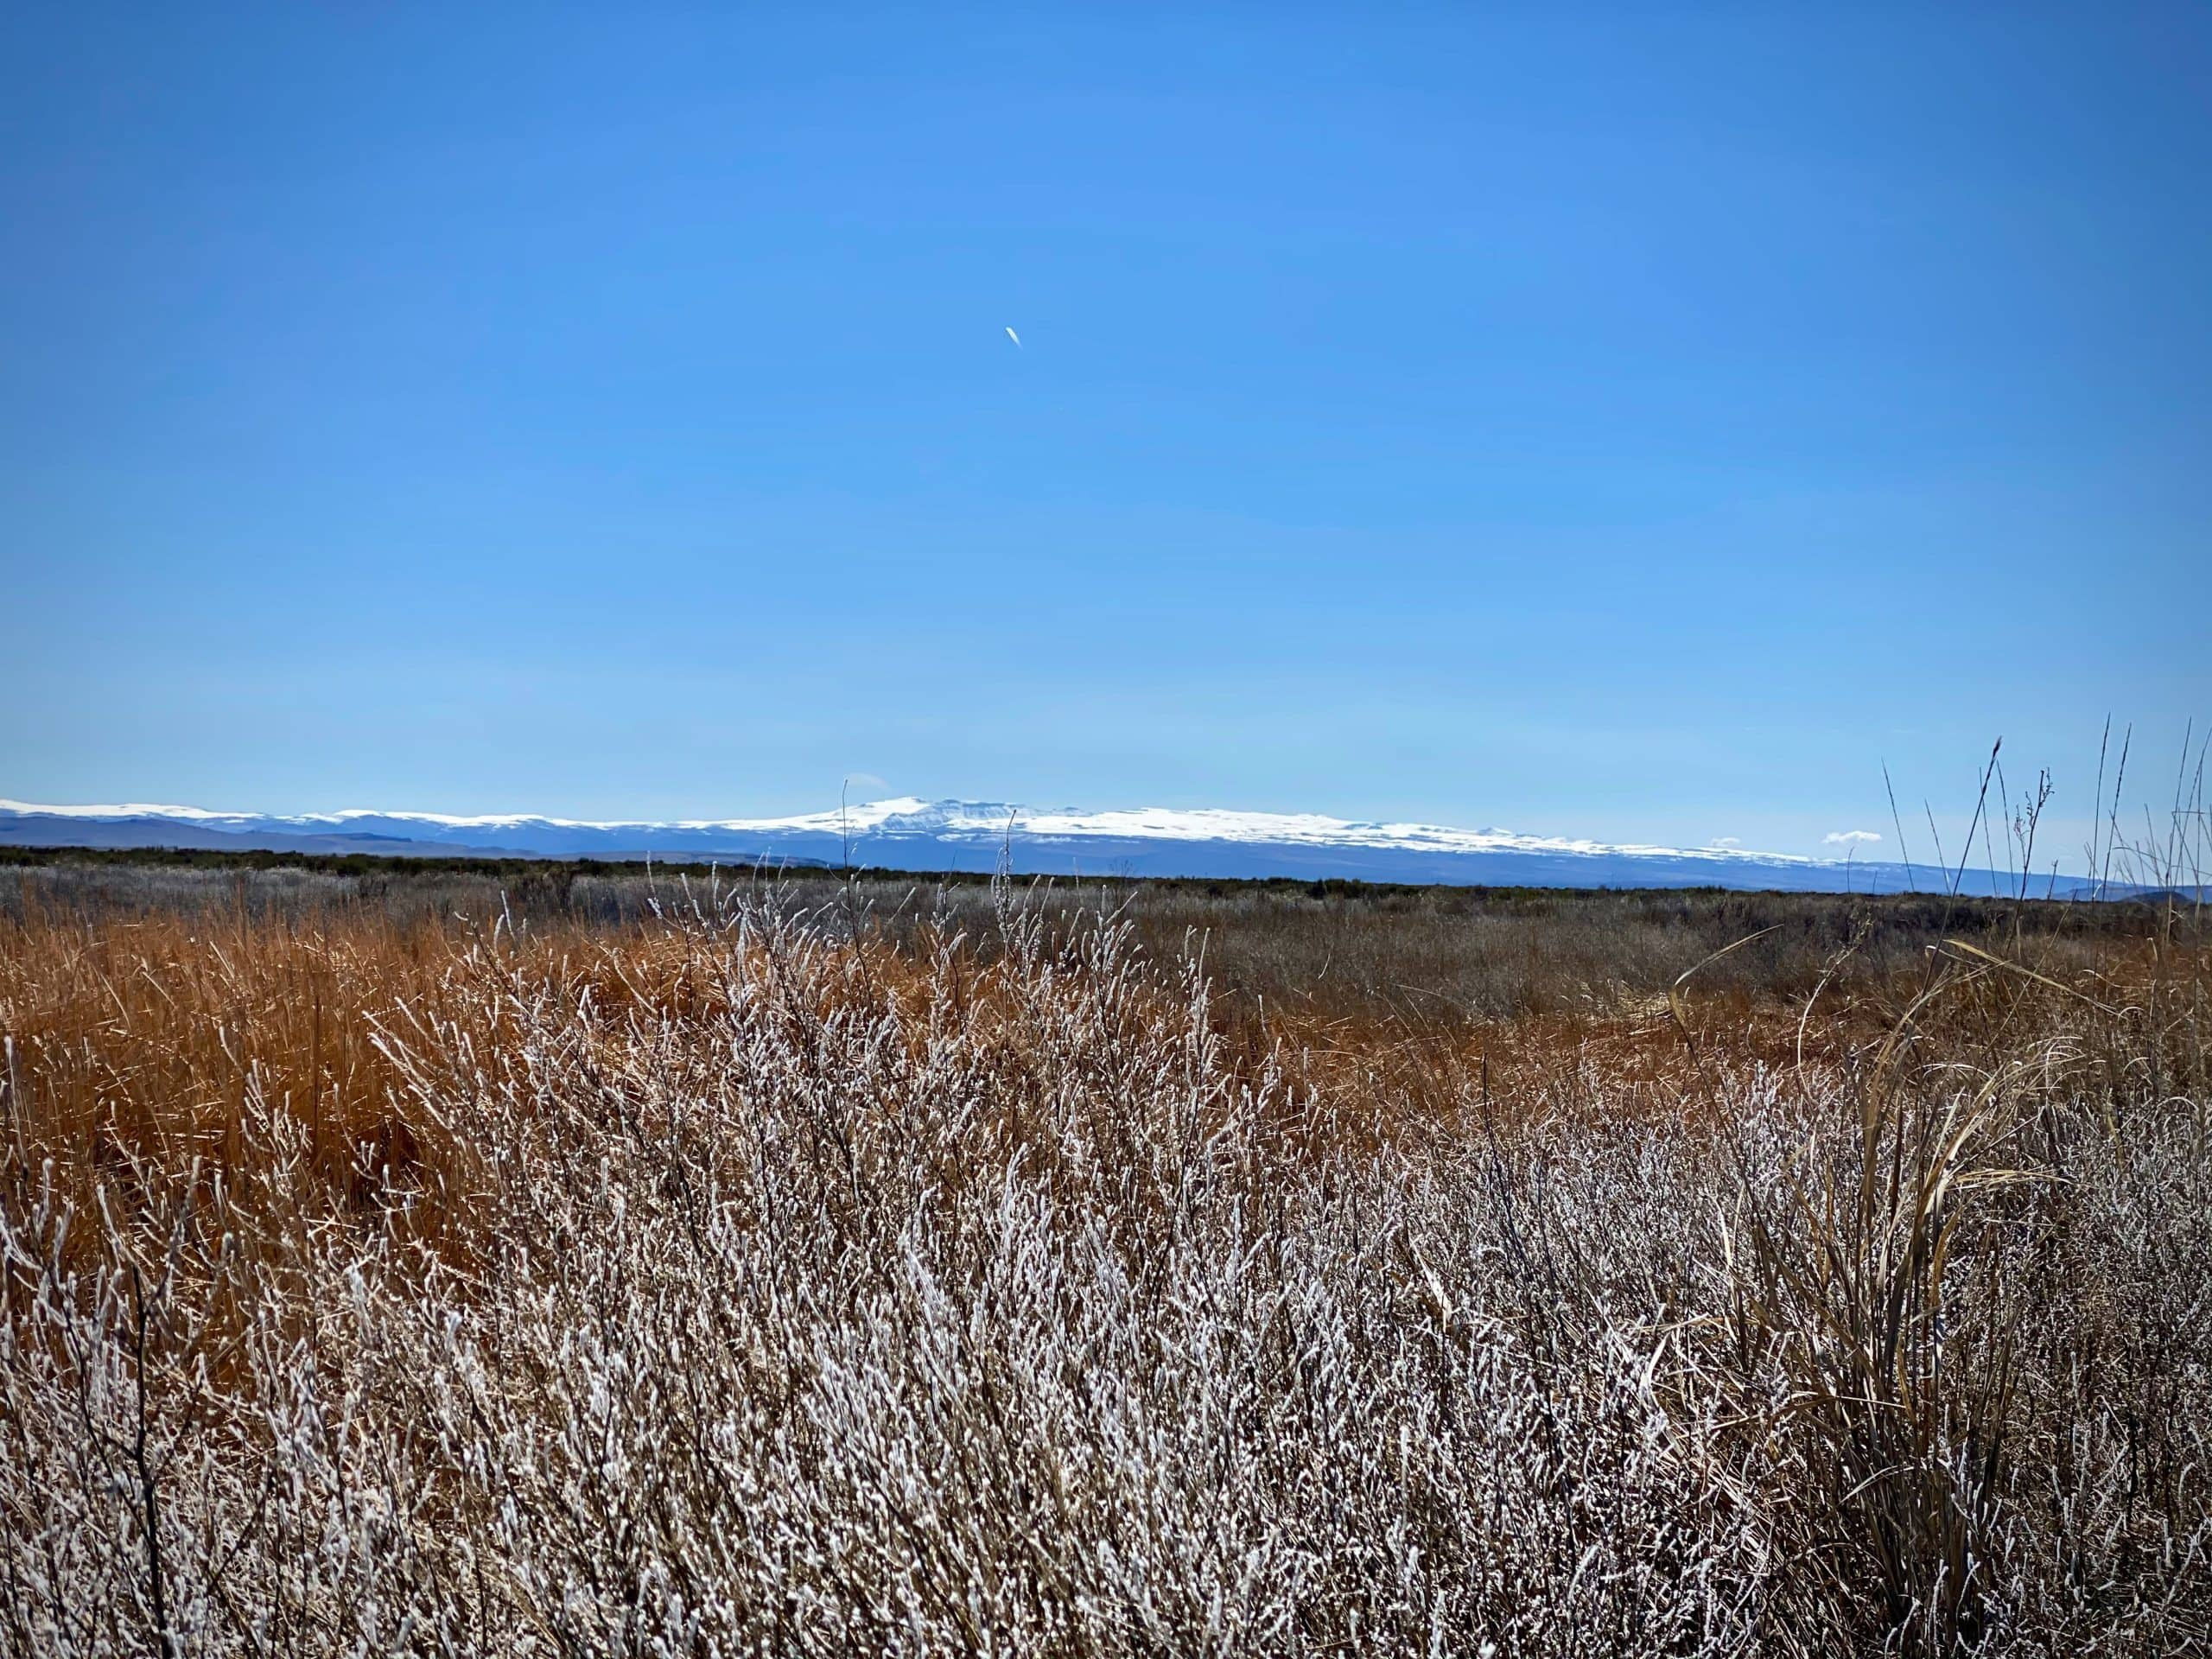 A view of Steens Mountain from Malheur National Wildlife refuge.